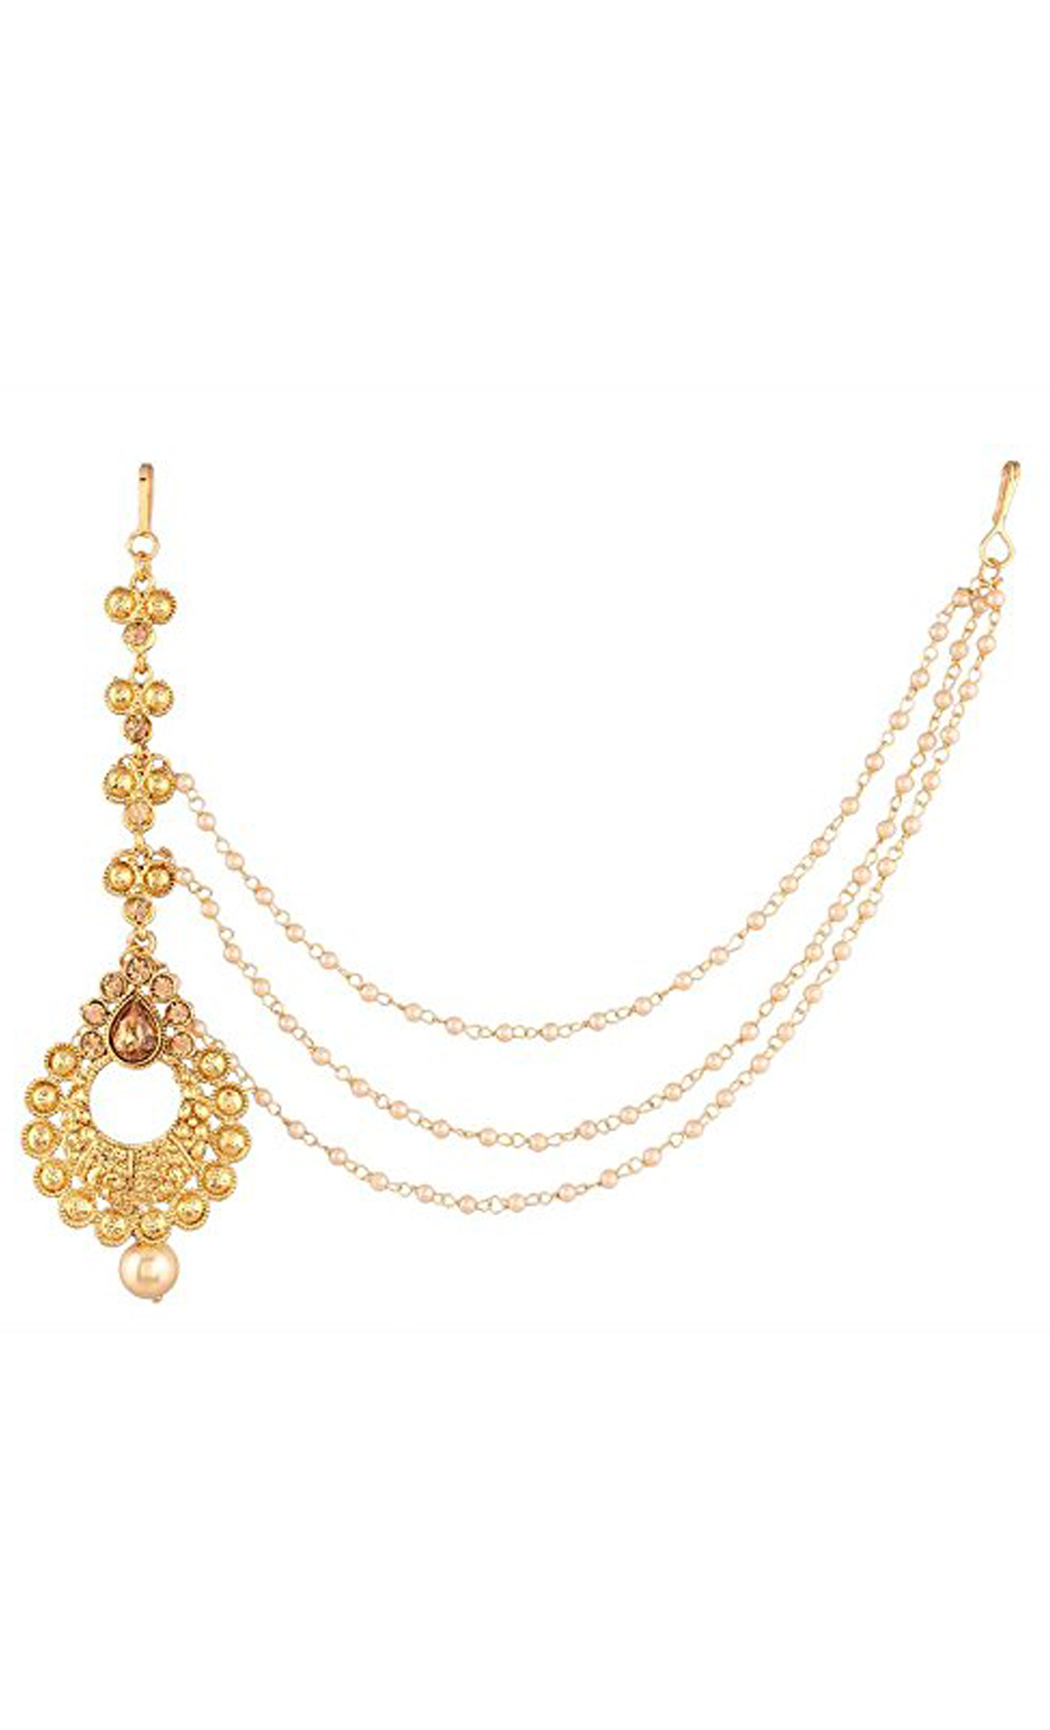 Mangtika Gold Plated with a Hair Chain | Latest Maang Tikka Designs and Maang Tikka with Chain | Buy Online